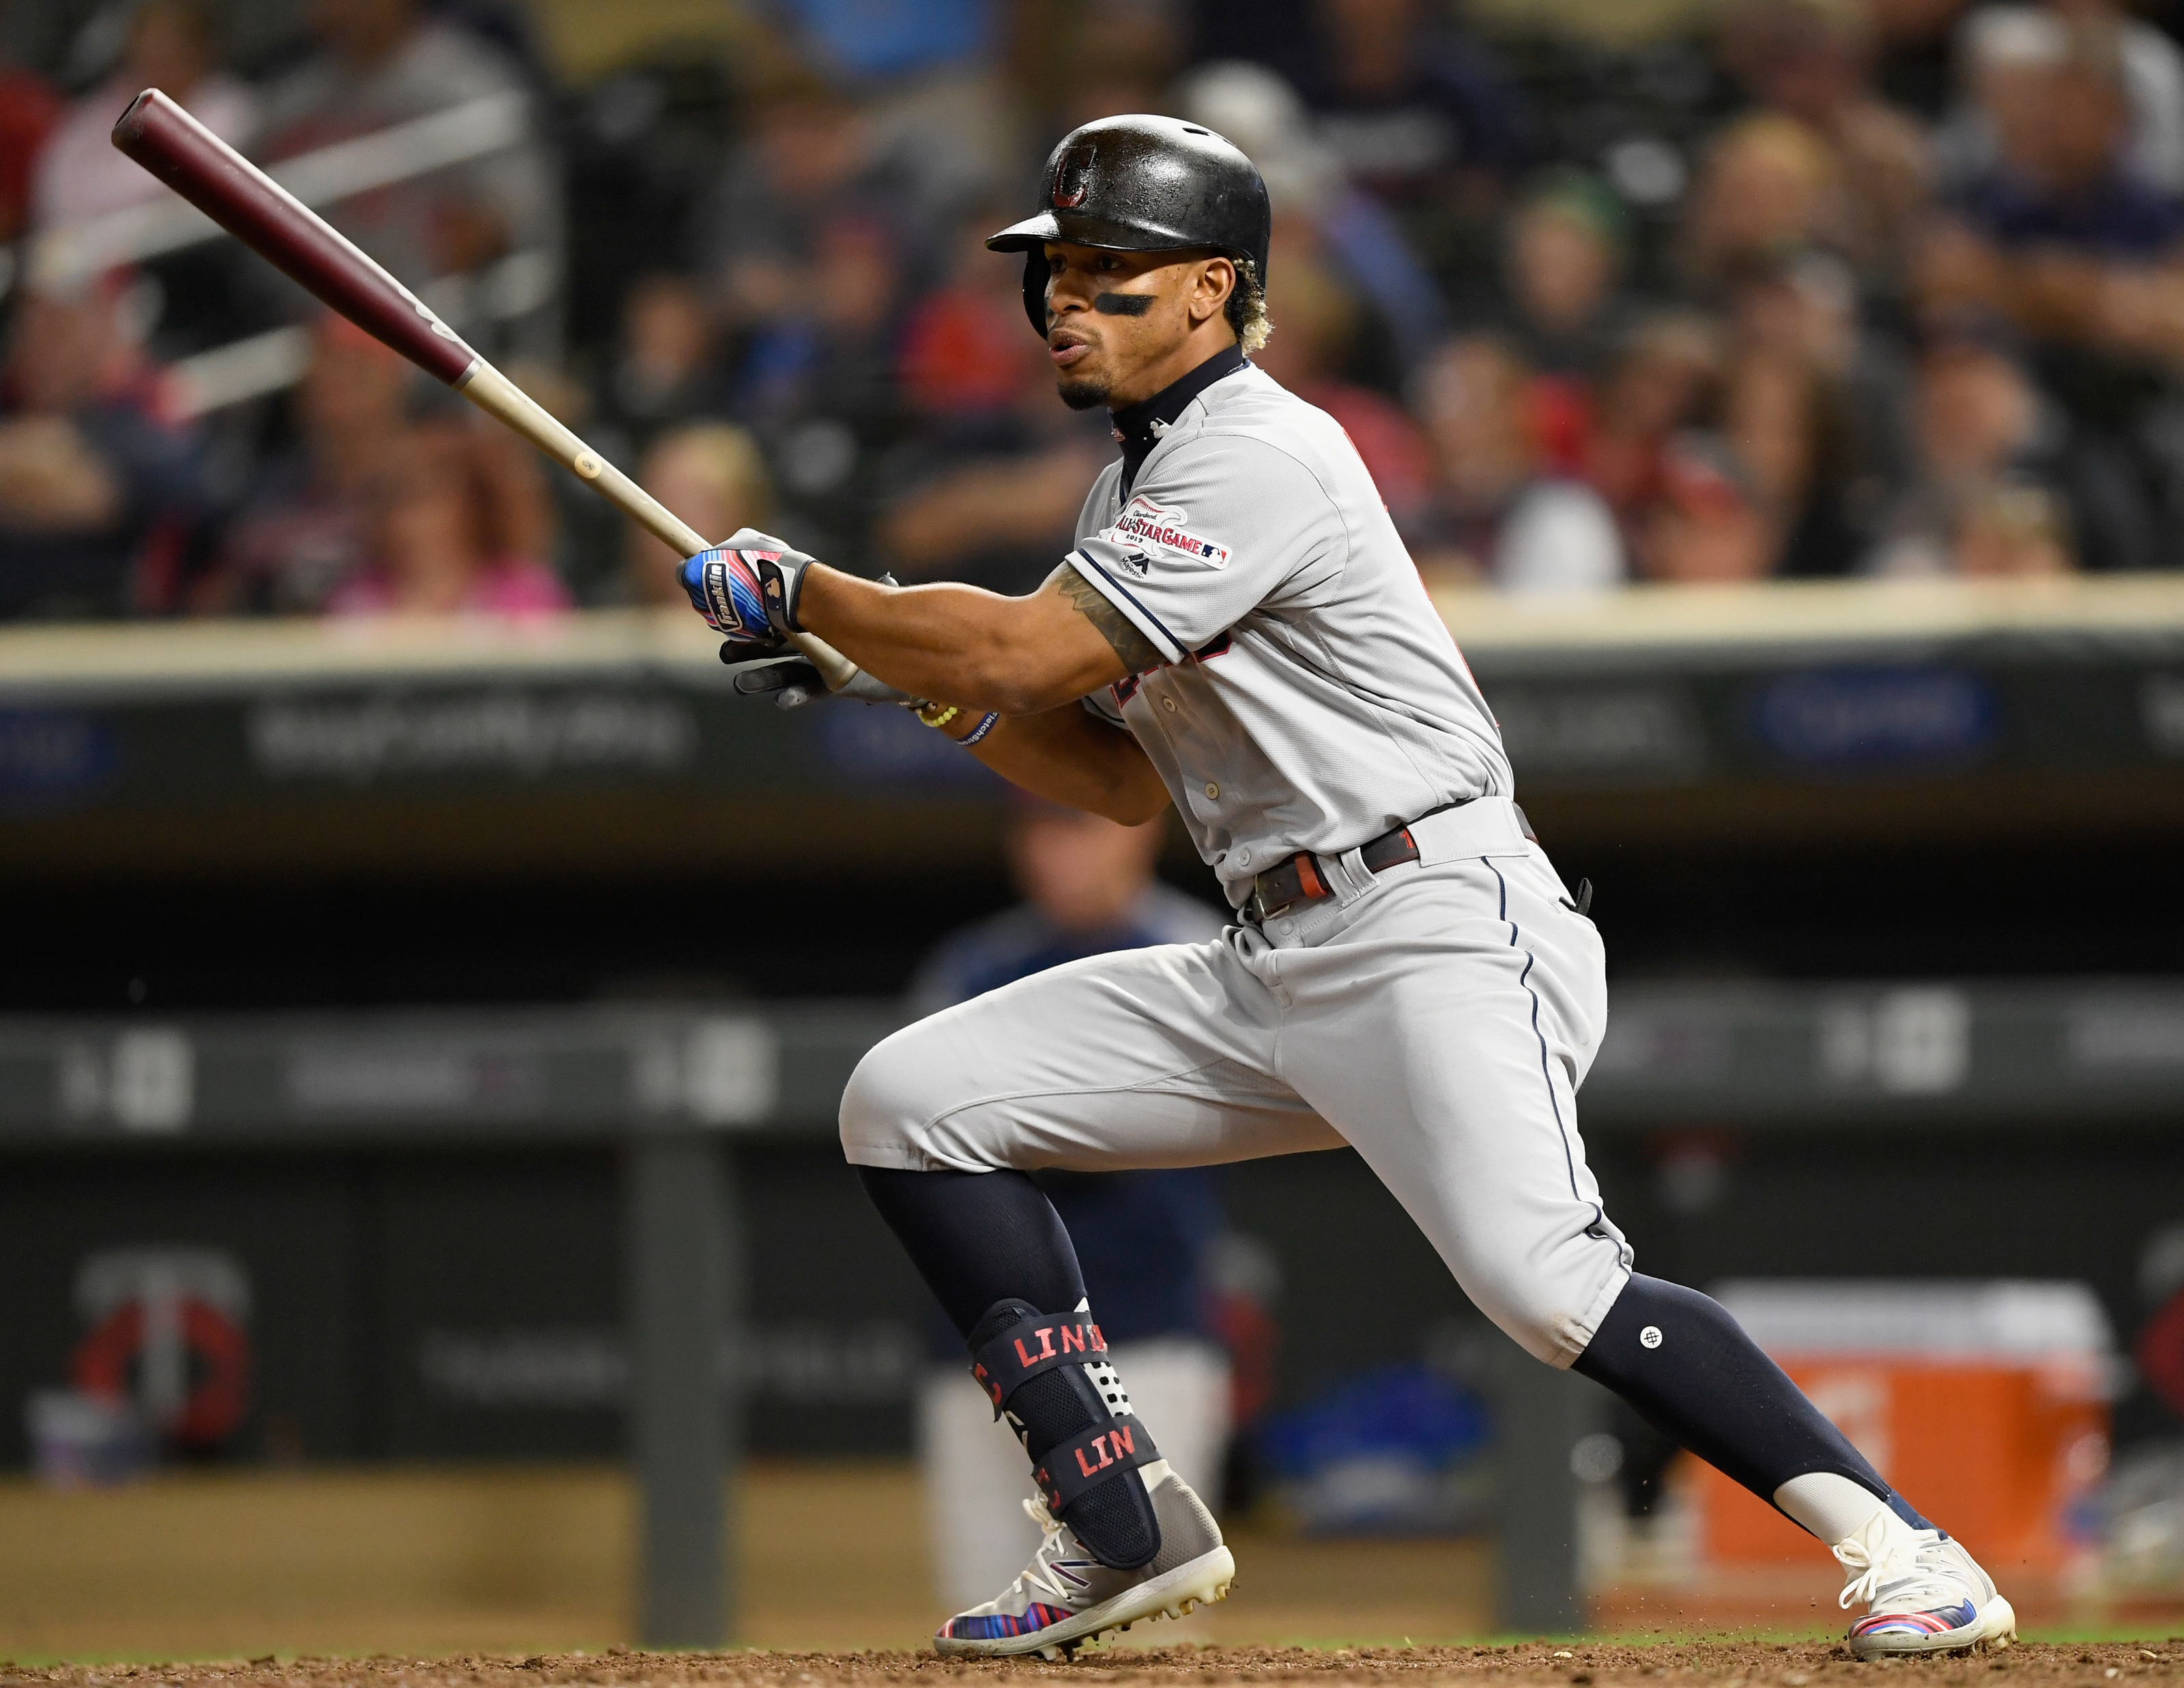 Cleveland Indians: Responding to NY Post story about Lindor, Yankees